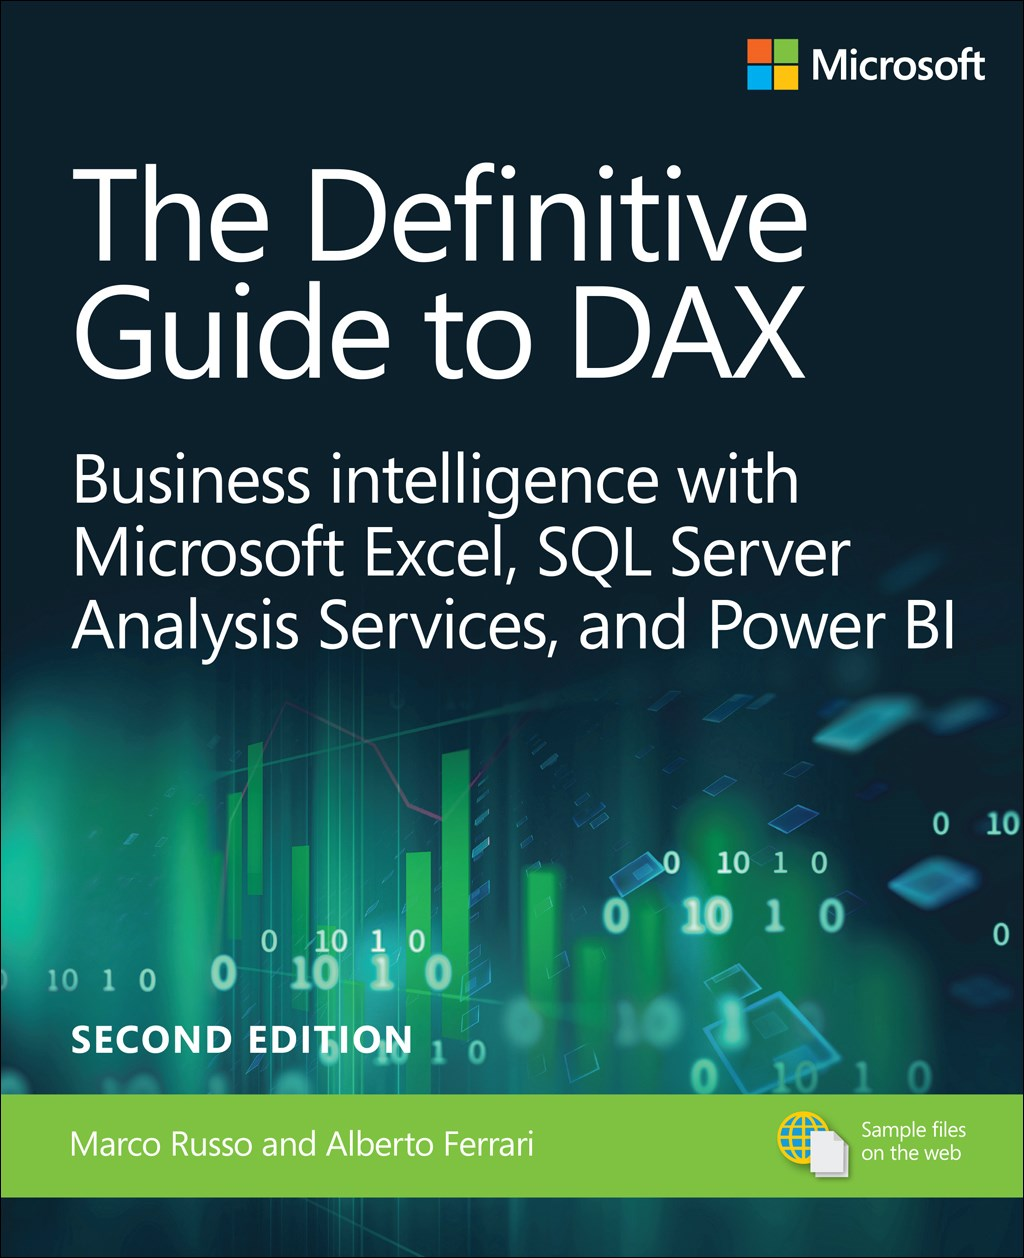 Definitive Guide to DAX, The: Business intelligence with Microsoft Excel, SQL Server Analysis Services, and Power BI, 2nd Edition